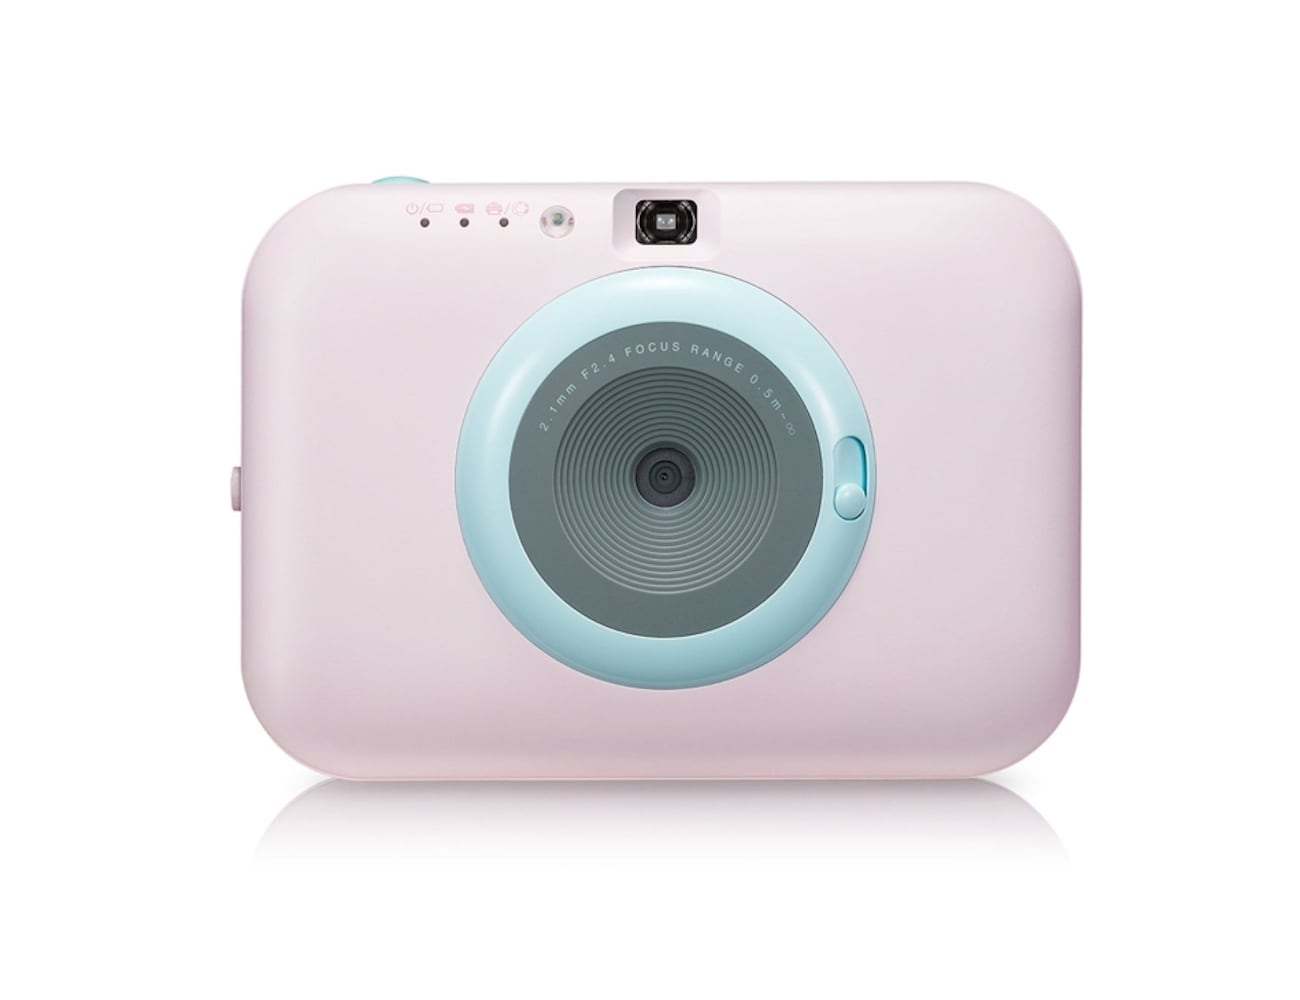 LG Pocket Photo Snap Instant Camera